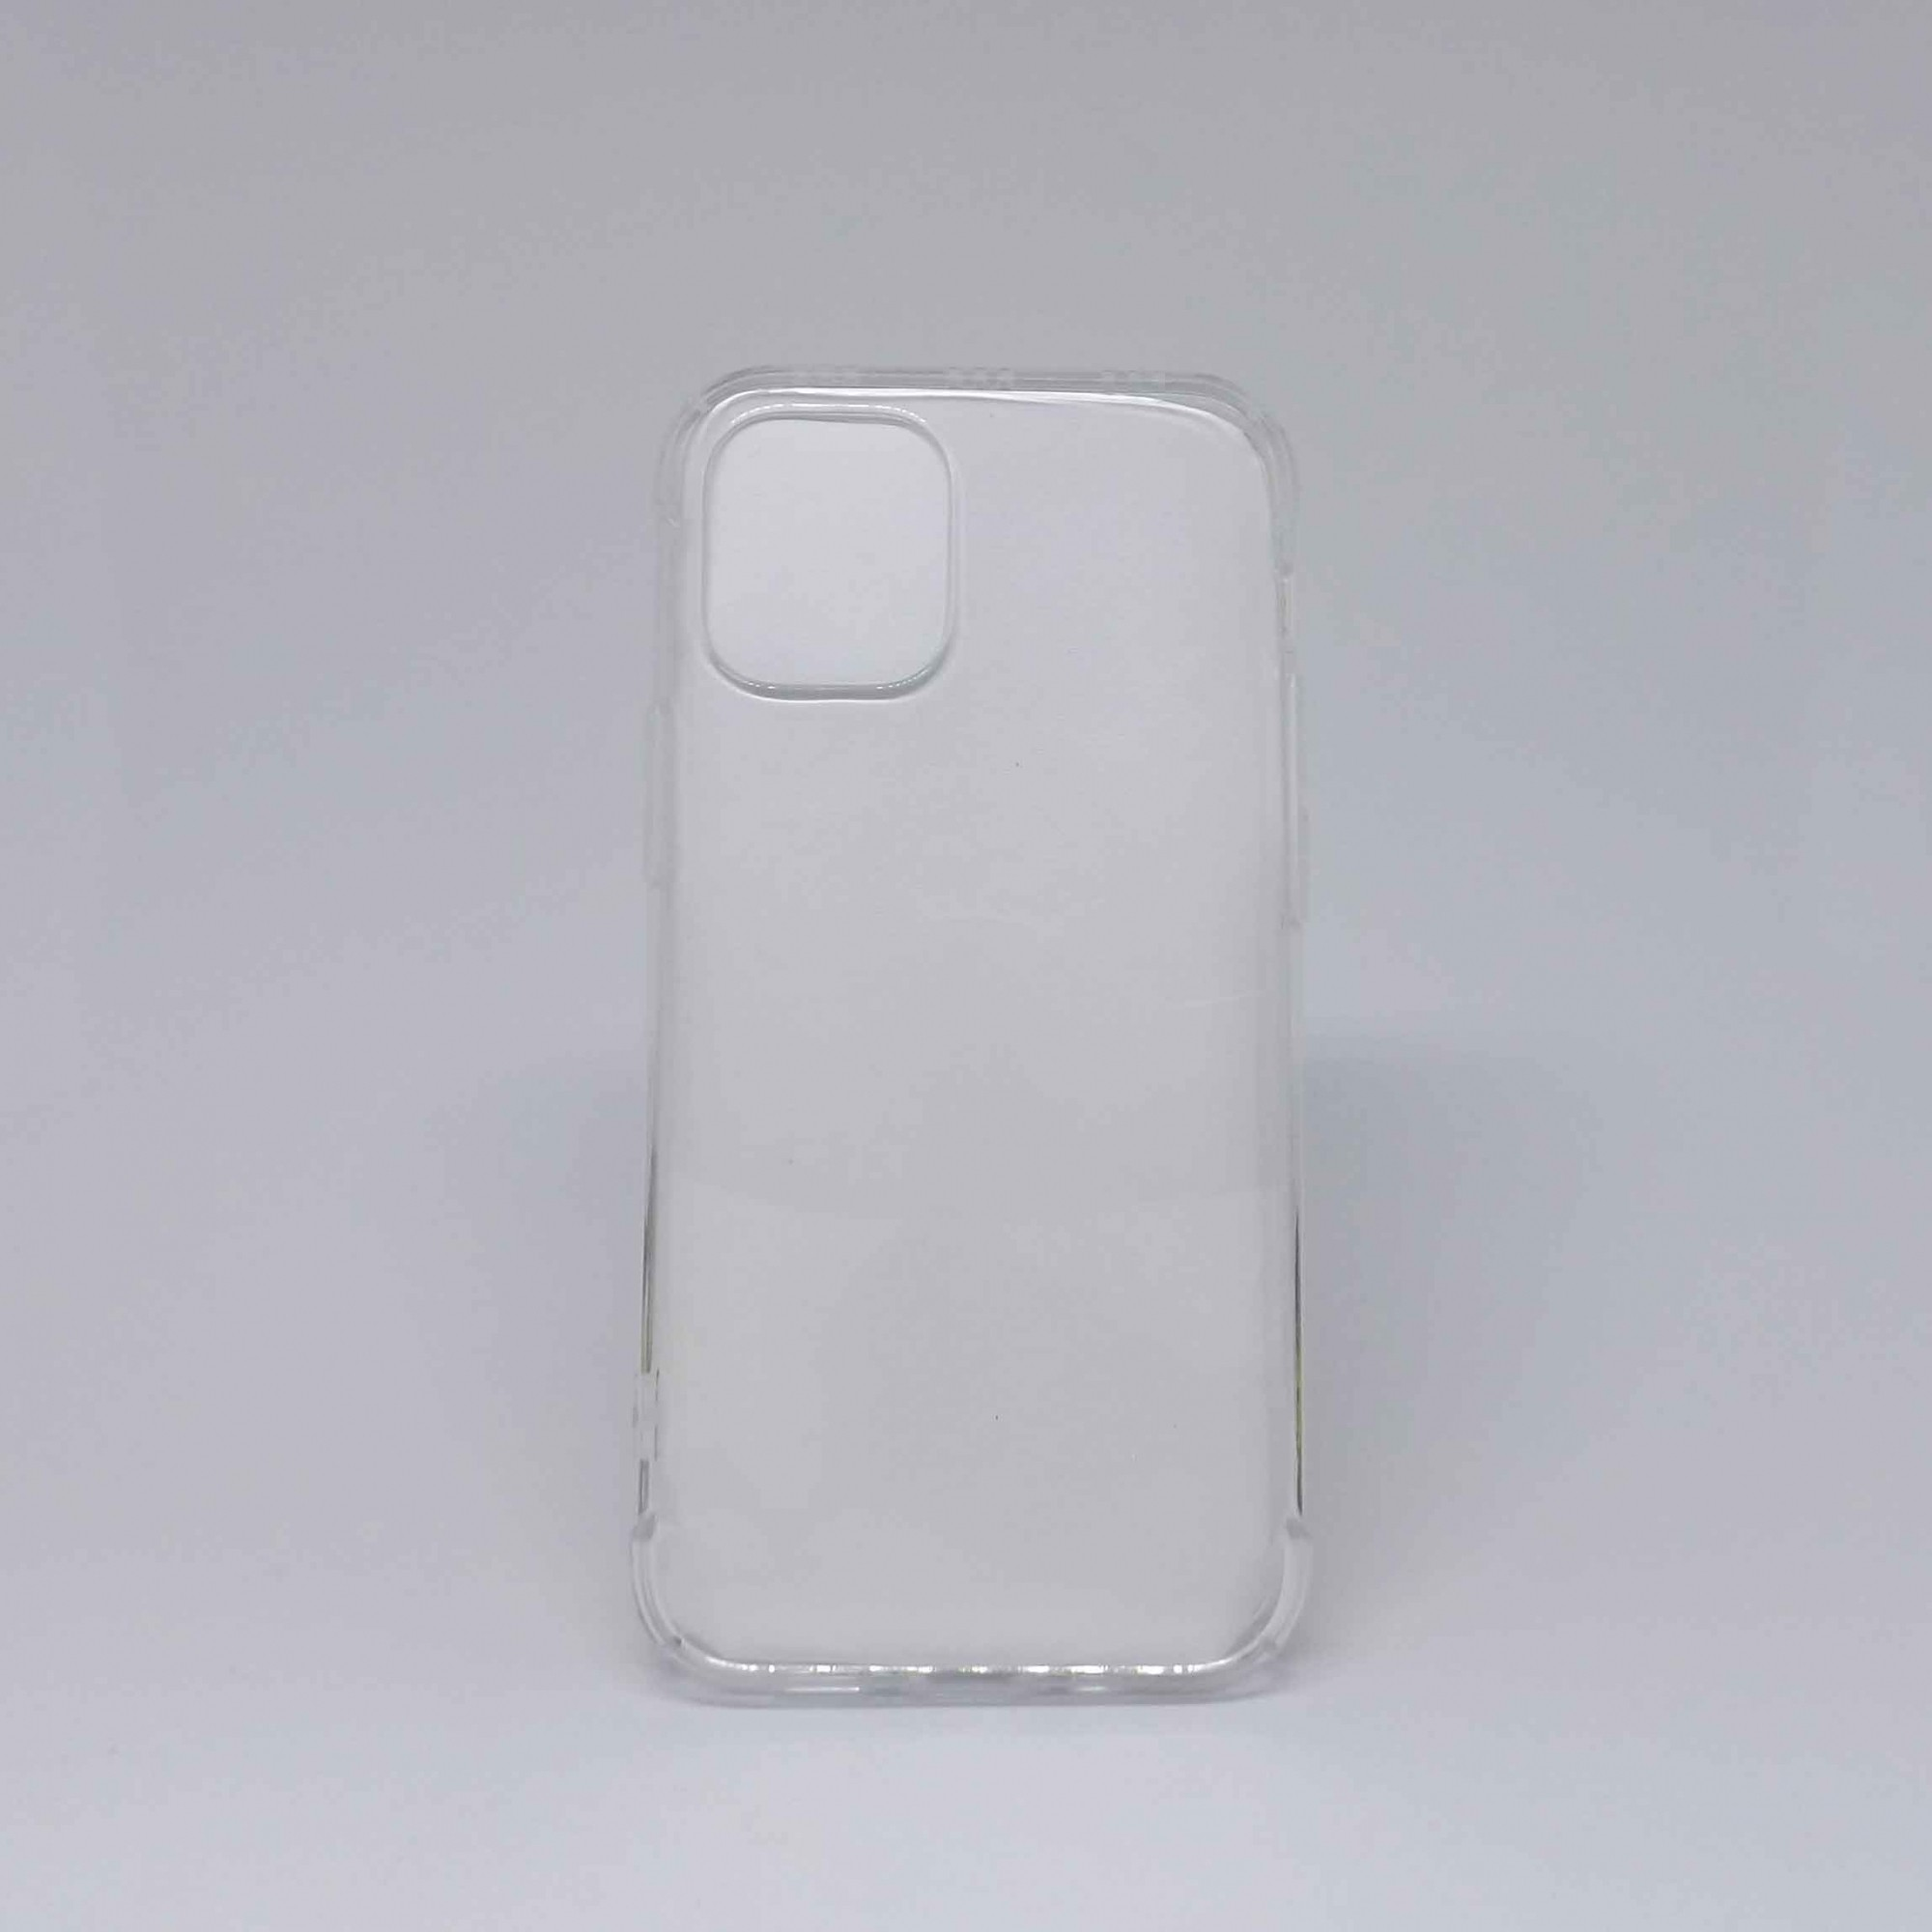 Capa iPhone 12 Mini Transparente